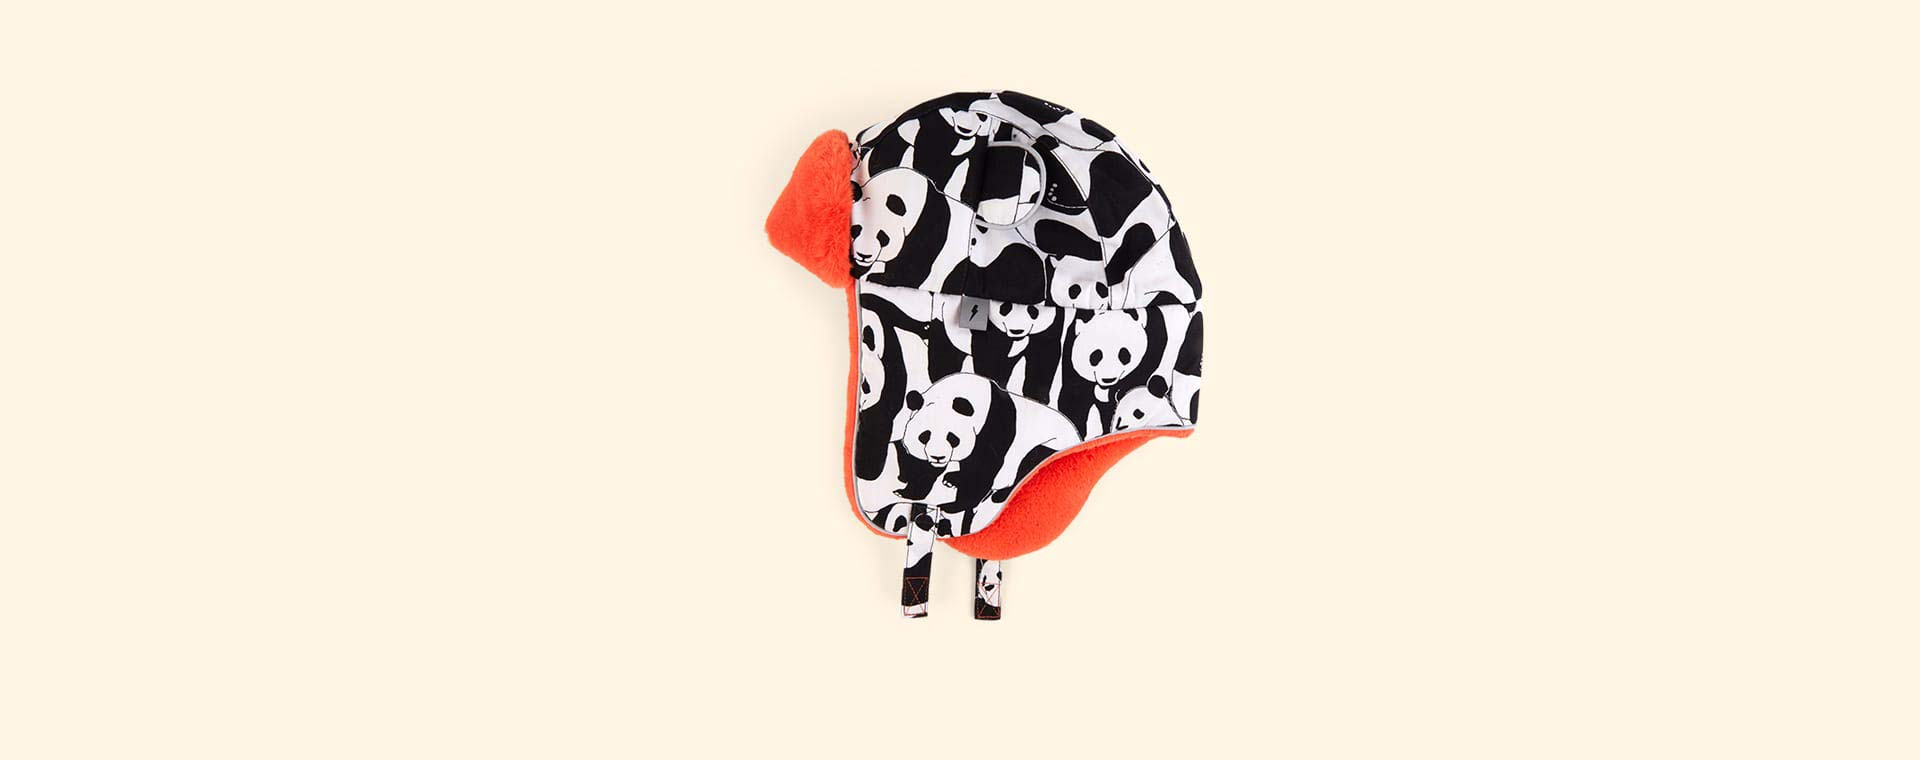 Panda Pop Little Hotdog Watson The Arctic Cub Hat